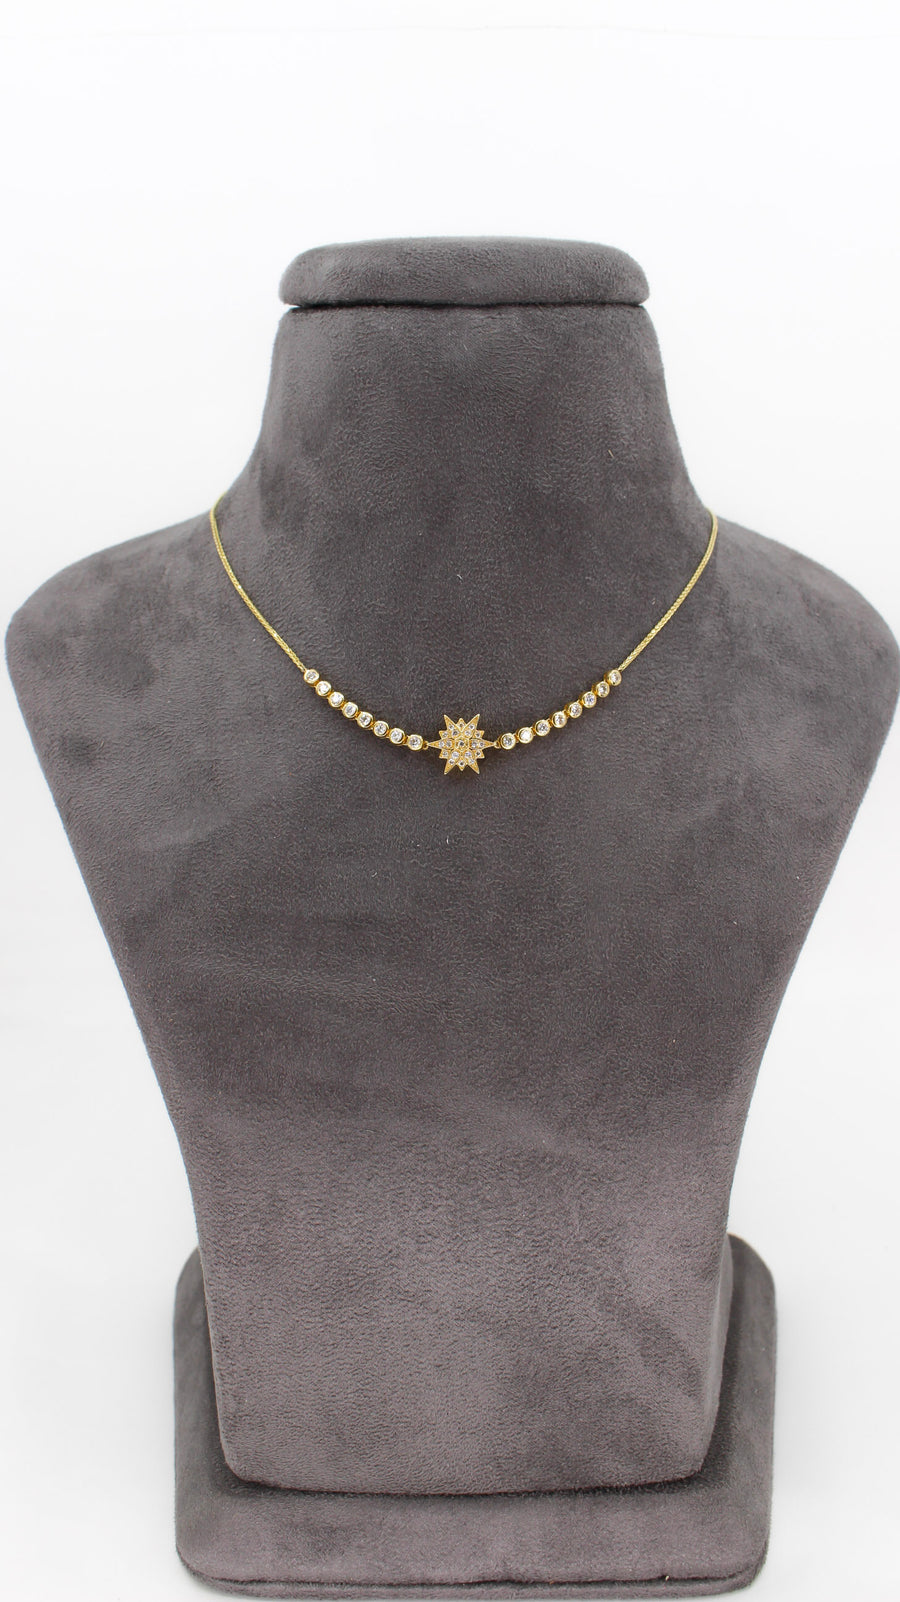 14KT Yellow Gold Diamond Star Half Tennis Necklace- Monisha Melwani Jewelry